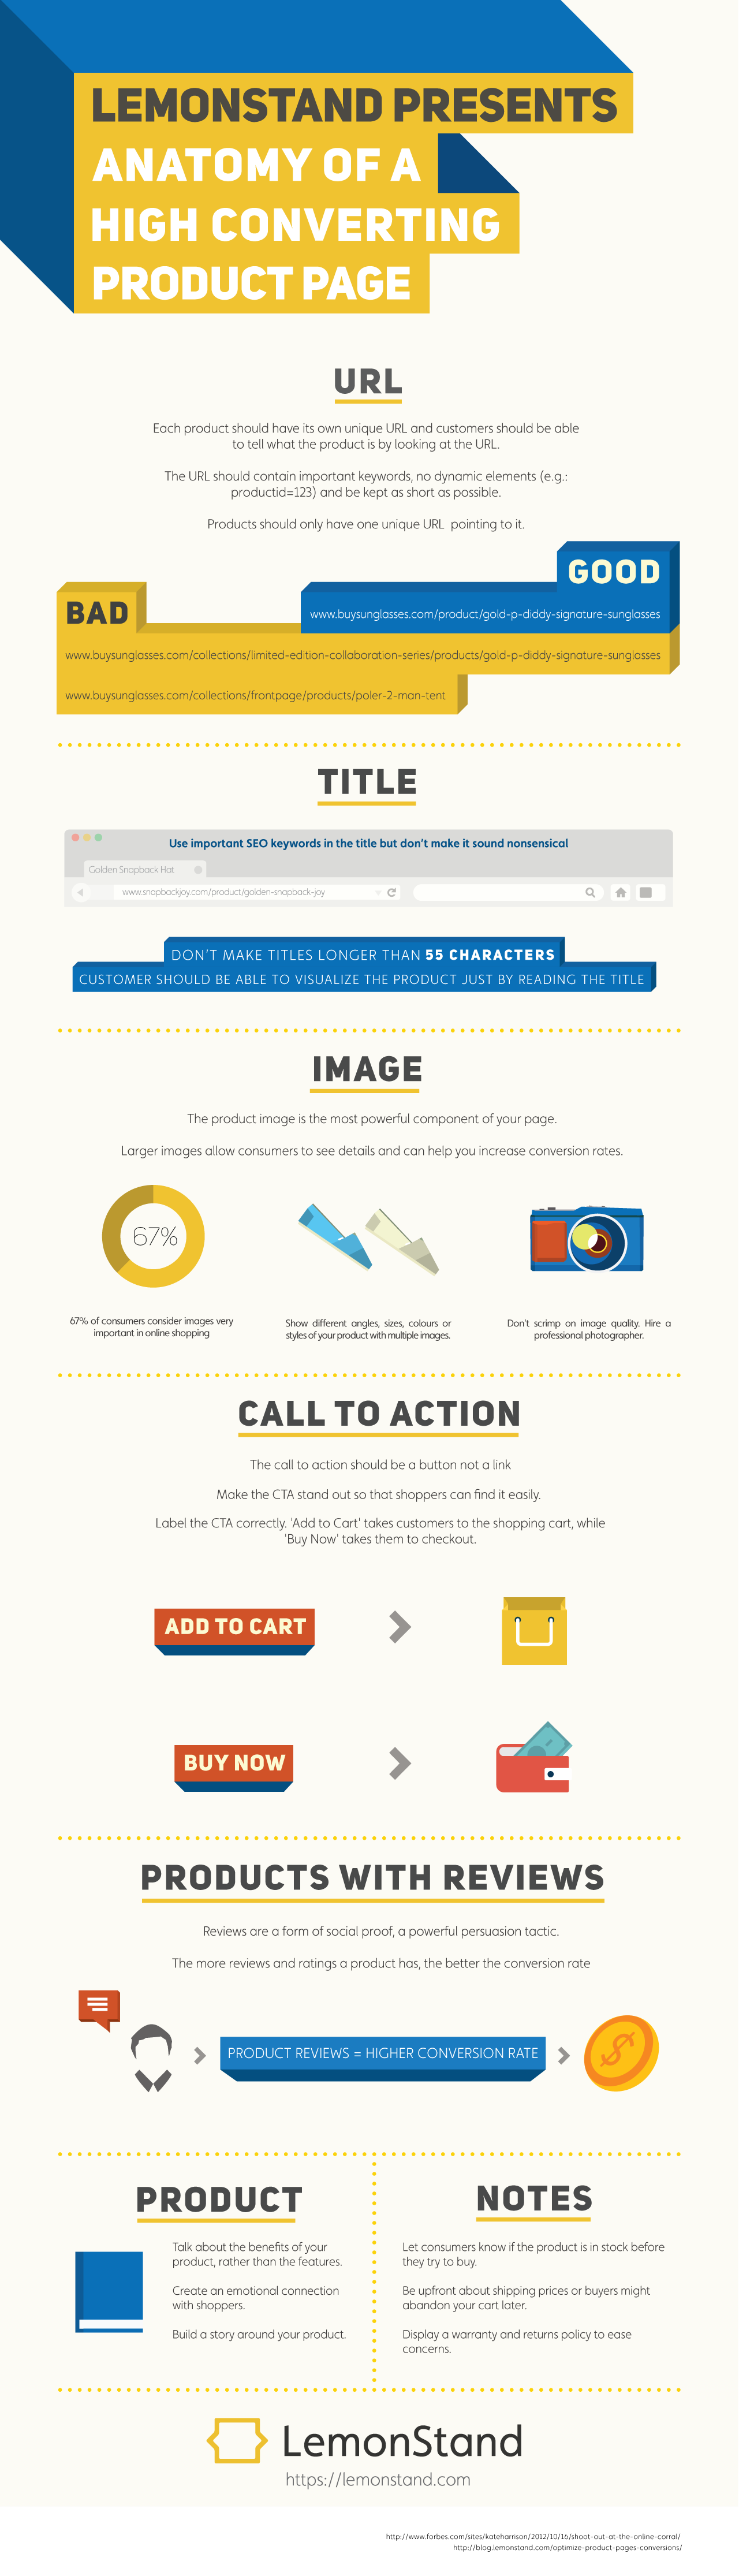 Infographic: Anatomy of a High Converting Product Page